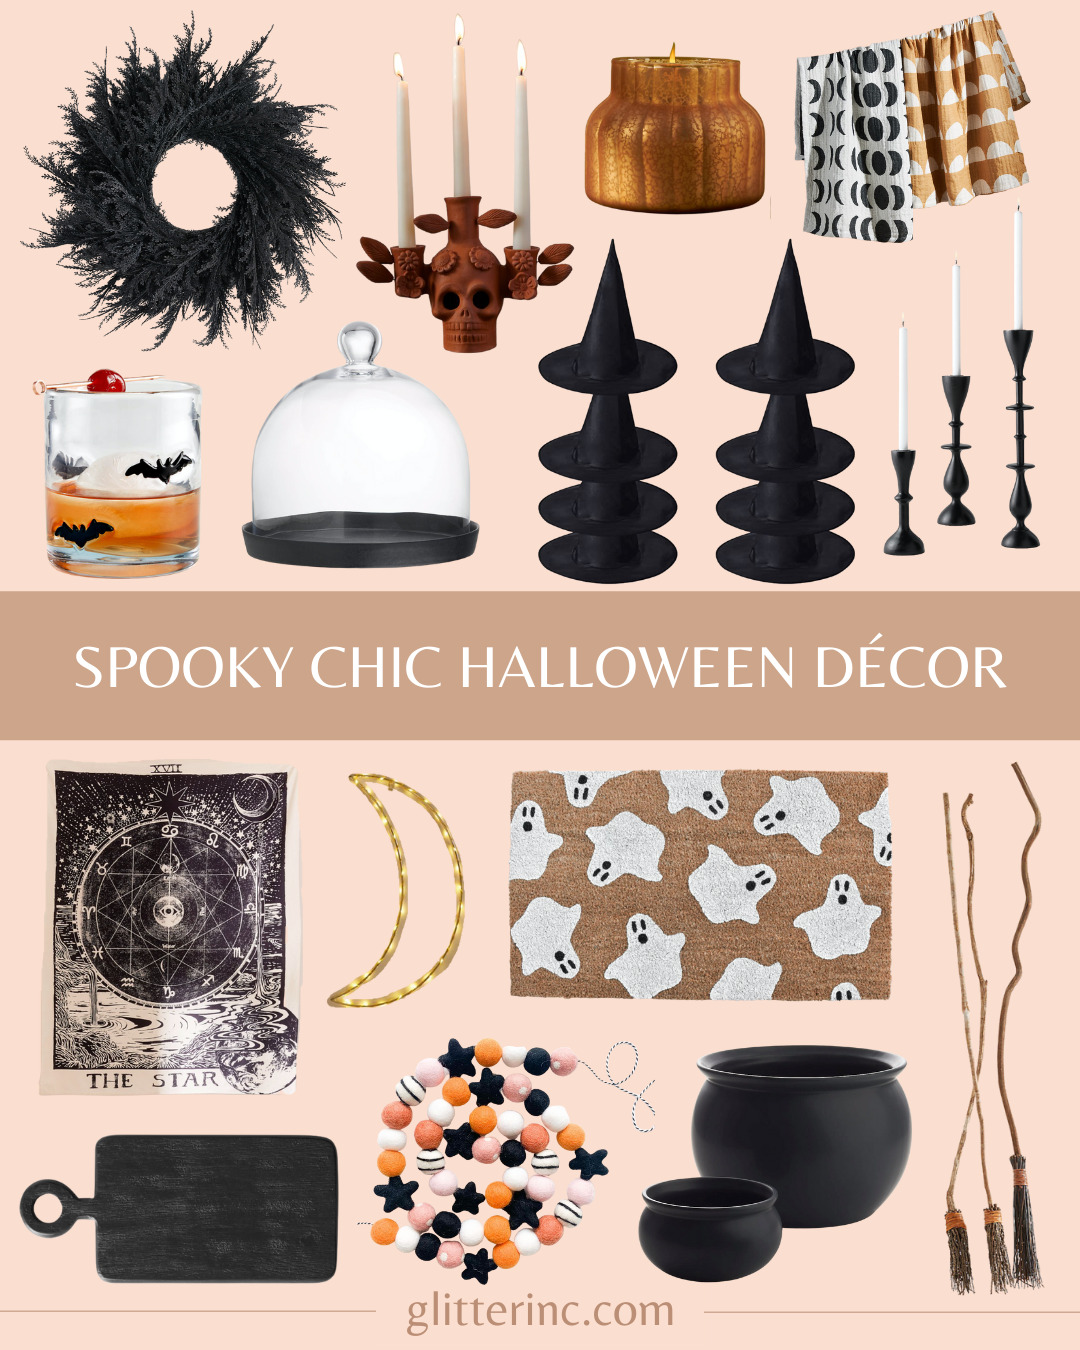 different types of spooky chic halloween decor